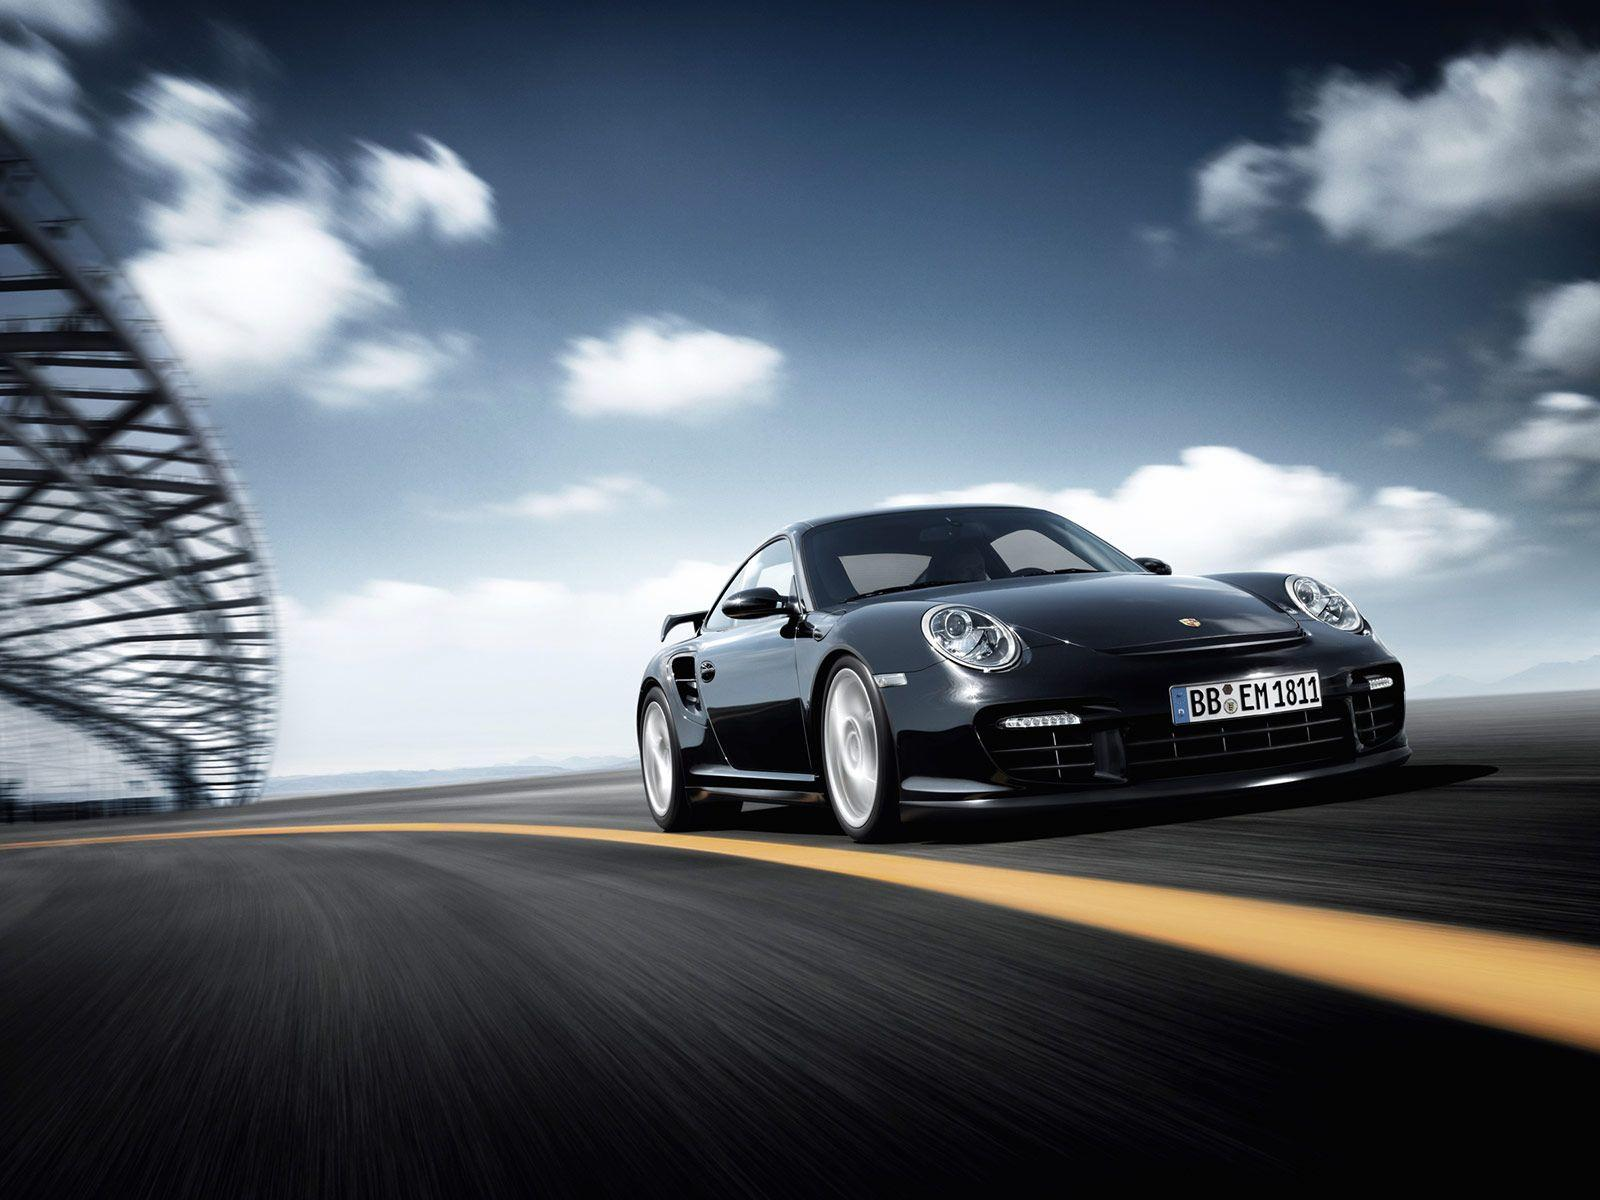 Porsche Hd Wallpapers 1080p: Porsche Wallpapers